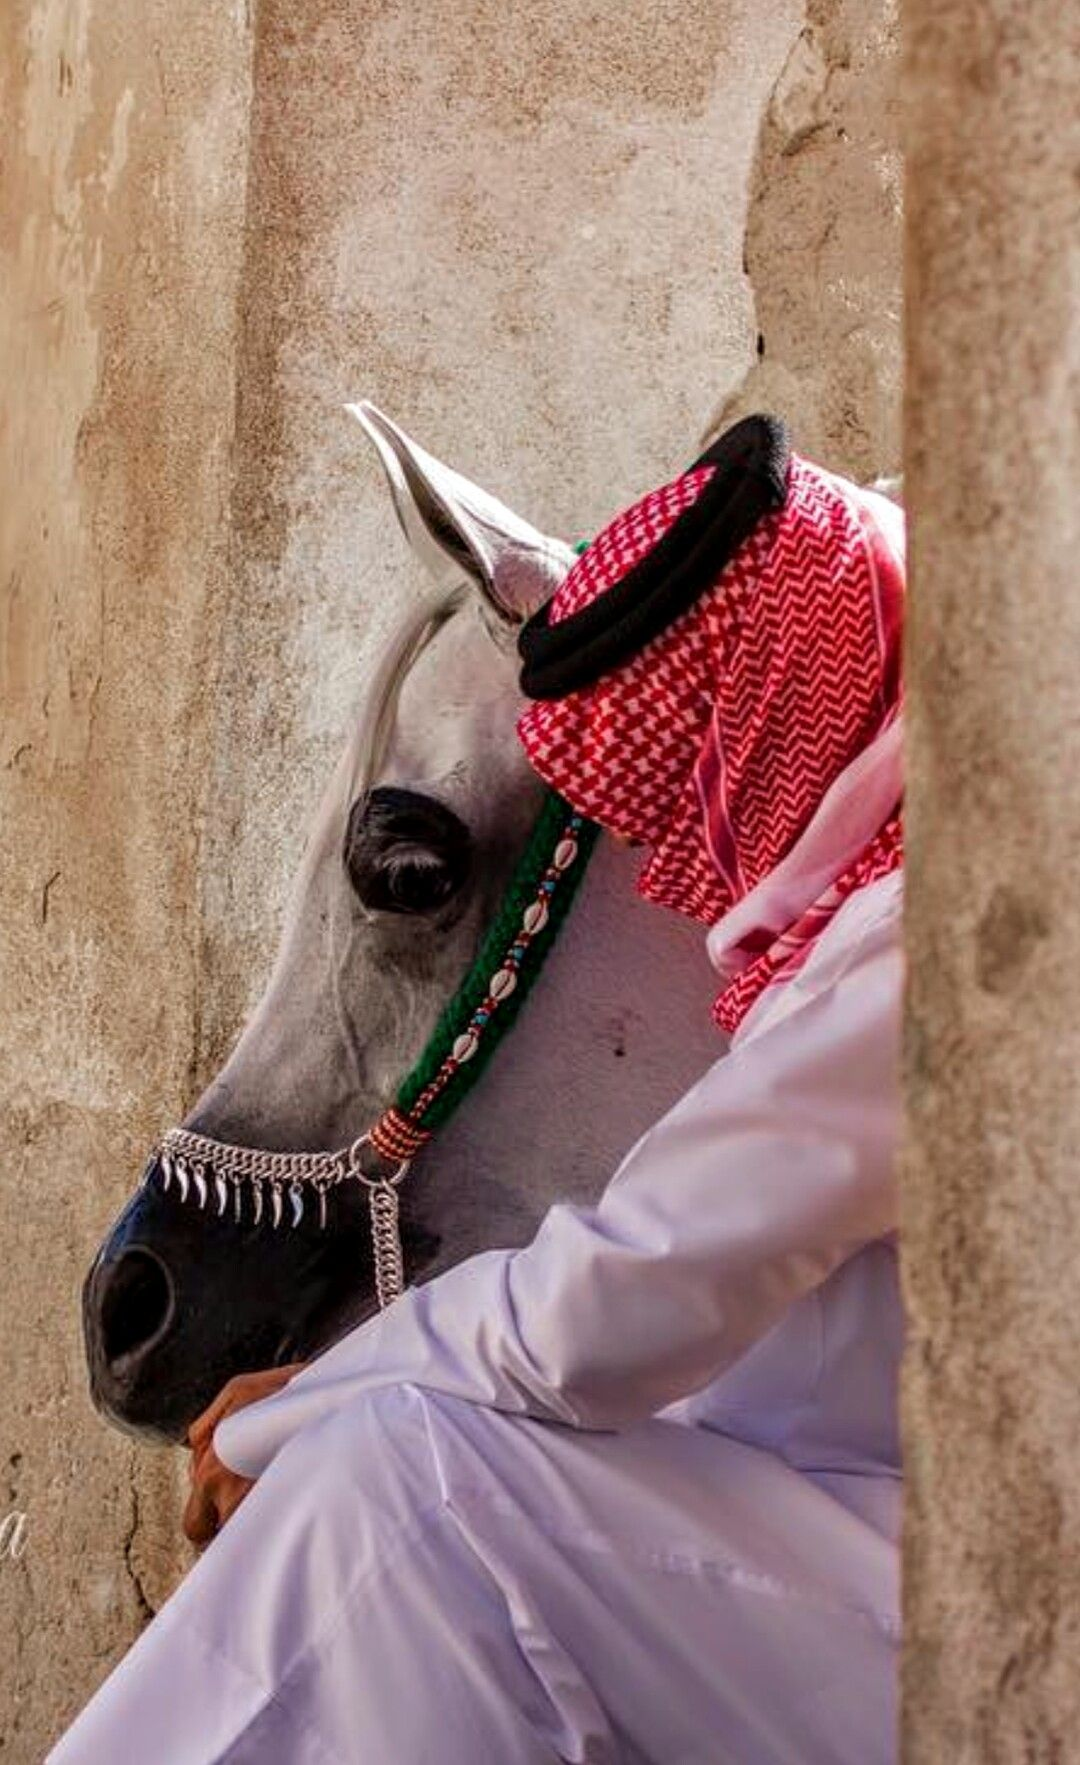 Pin By Hamza Allouh On Arabian Horse Arab Men Fashion Horse Girl Photography Arab Men